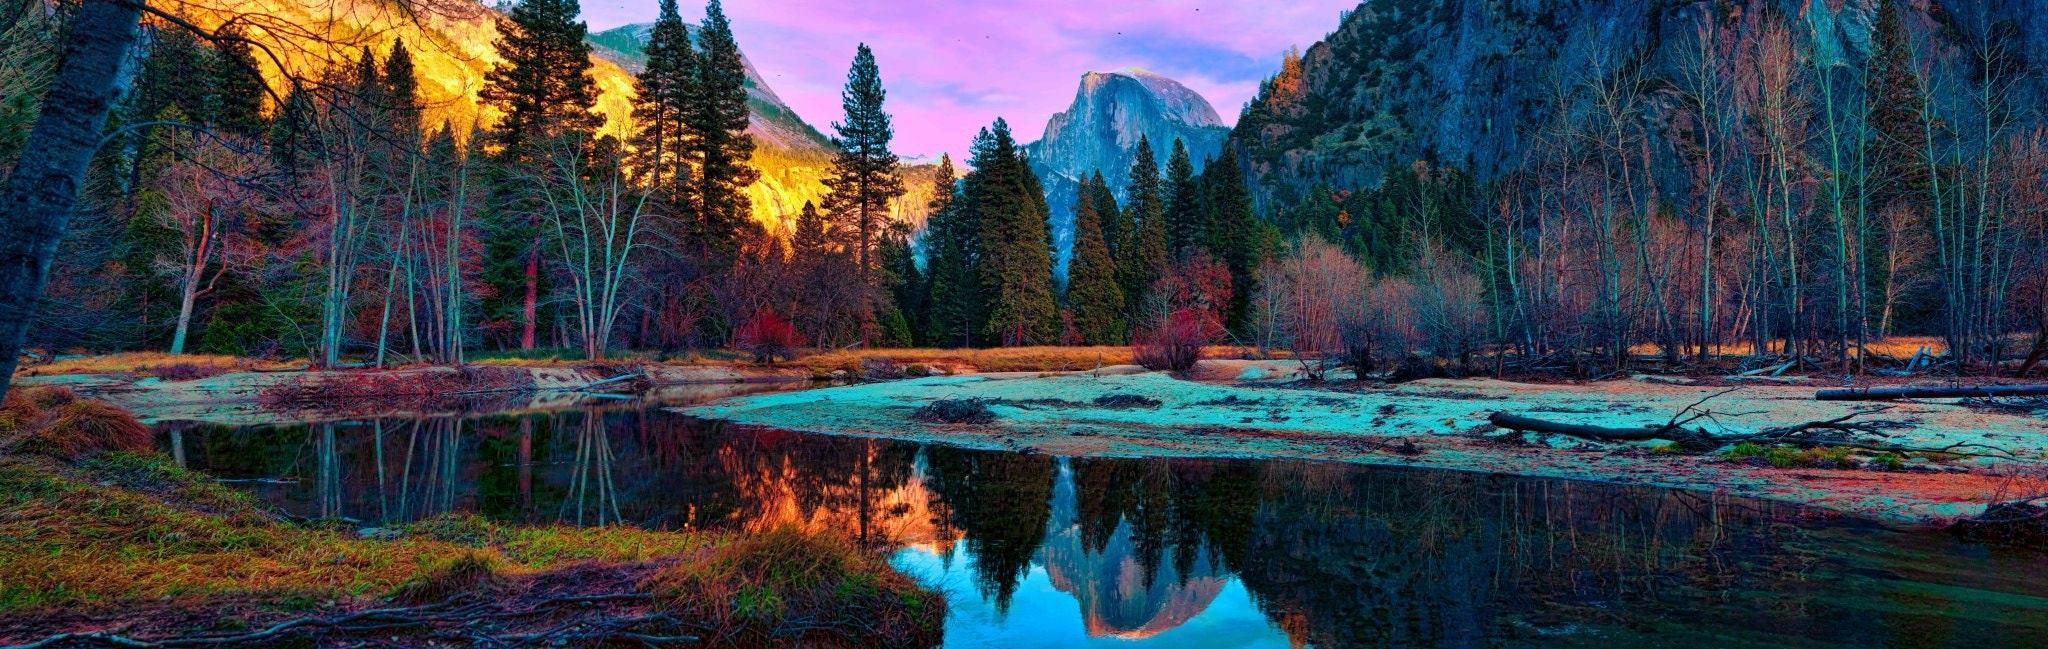 Photograph Half Dome Panorama by Sheldon Steere on 500px